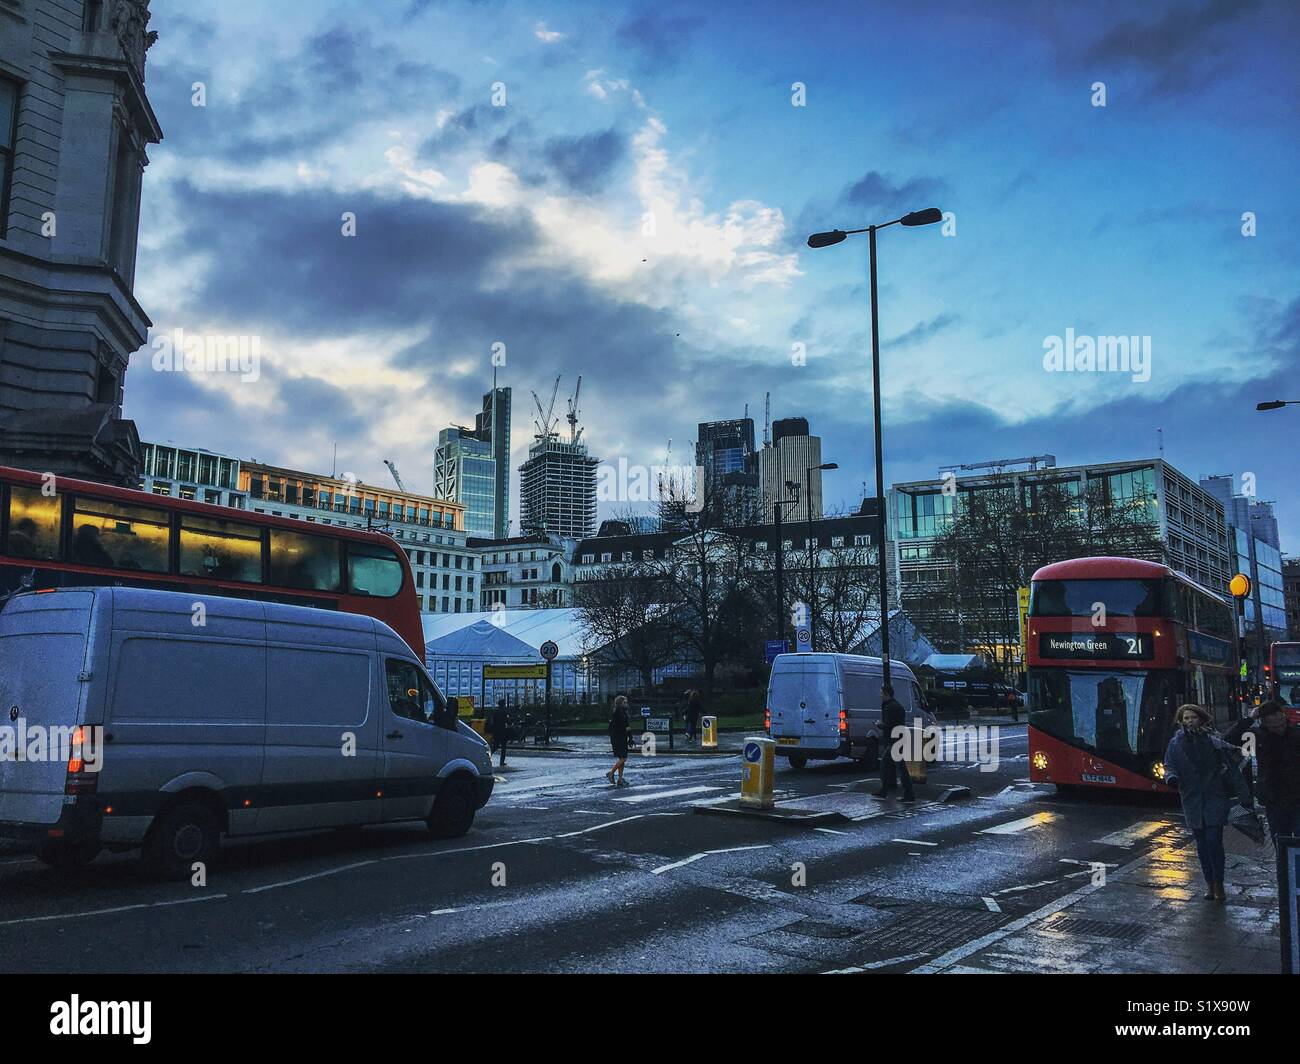 A photograph of the Moorgate in Islington, London - Stock Image